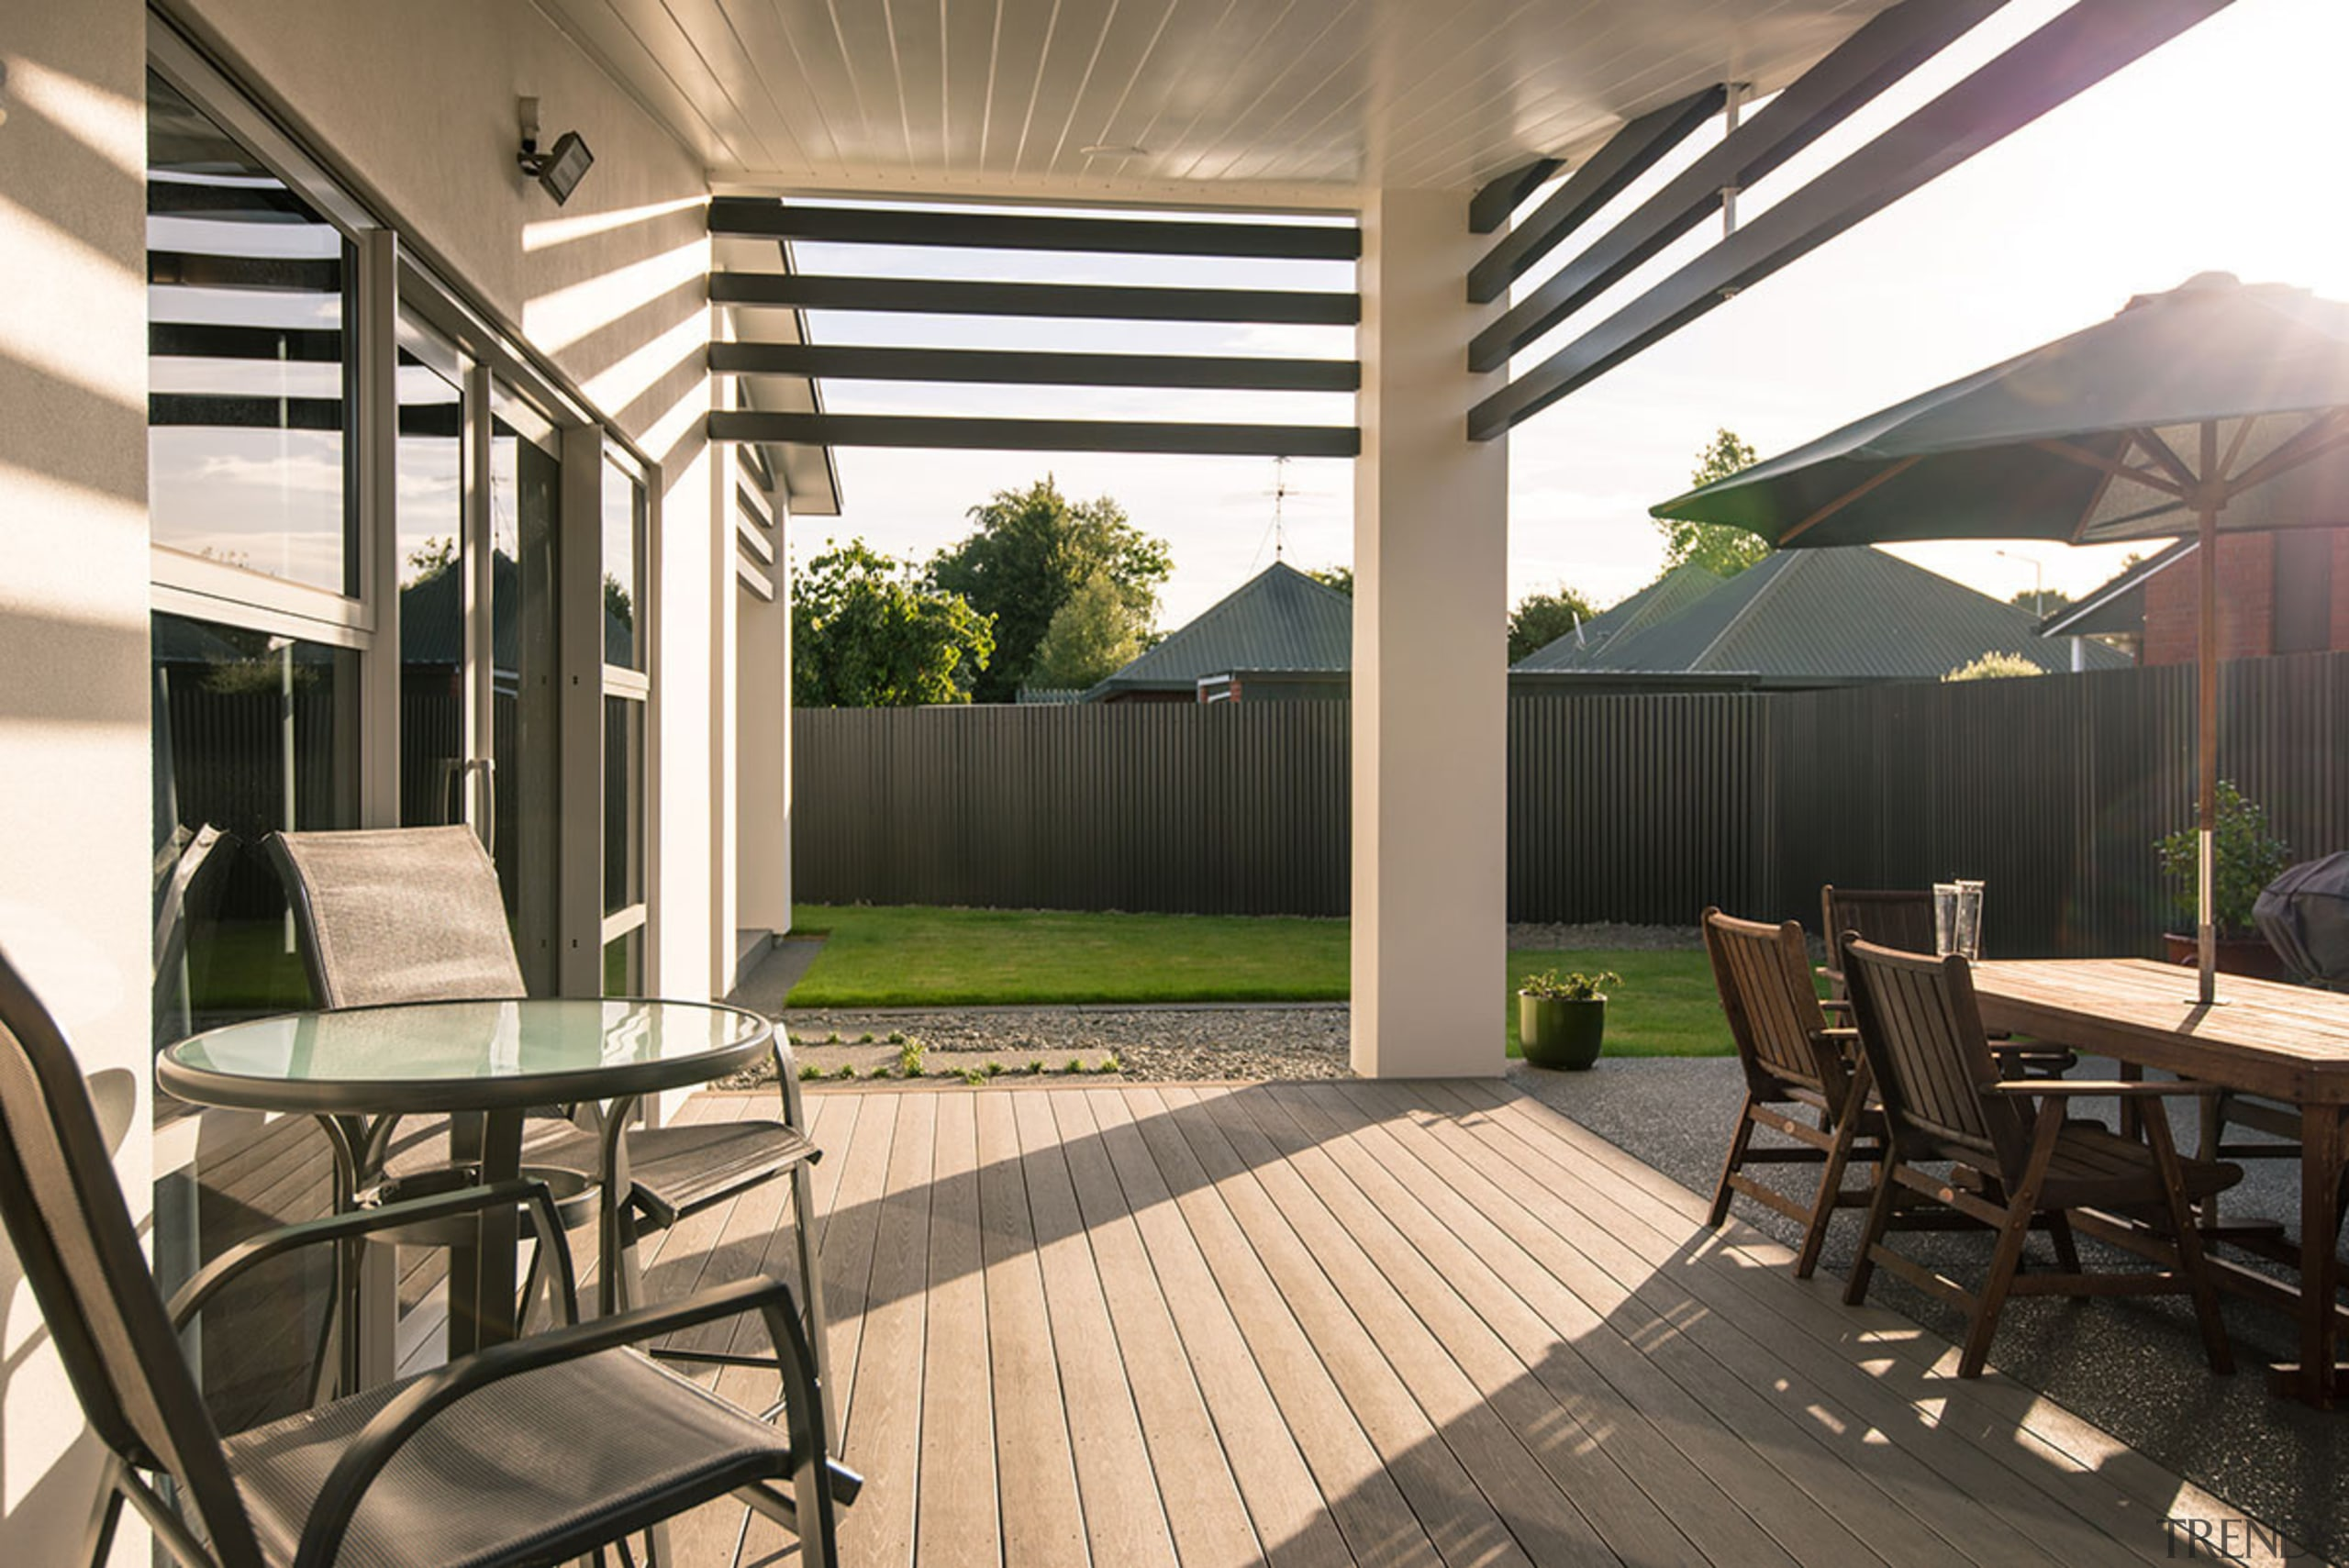 TimberTech decking is imported from the United States house, interior design, outdoor structure, patio, real estate, roof, black